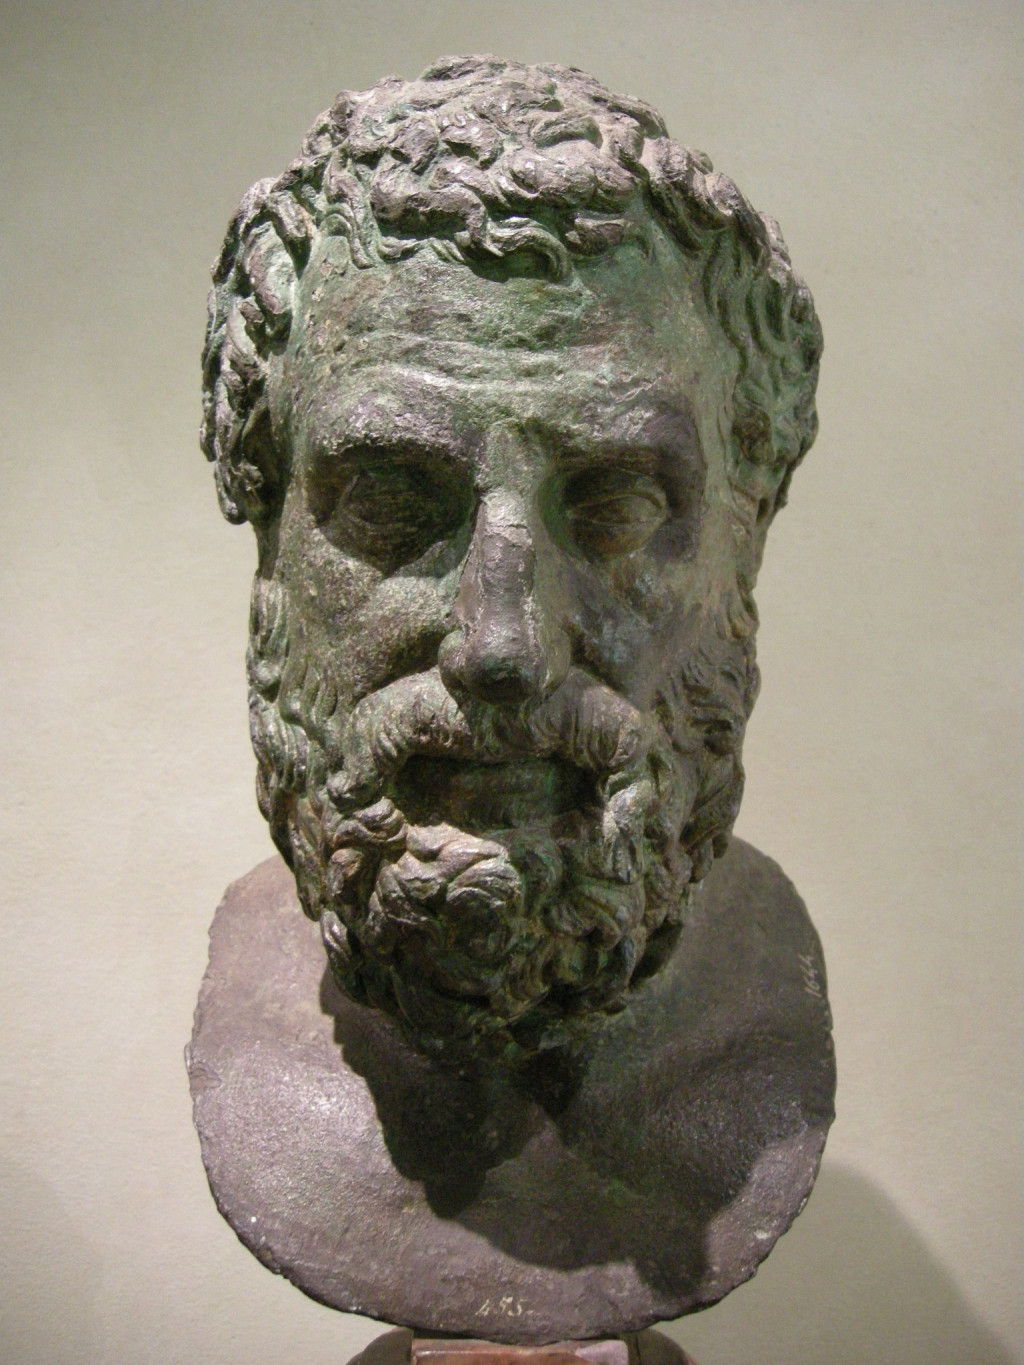 a biography of sophocles an ancient greek dramatist How different is the ancient greek language from the modern greek language can any greek-speaking people testify if they understand classical who is considered the greatest ancient greek playwright, sophocles or aeschylus they are both great.